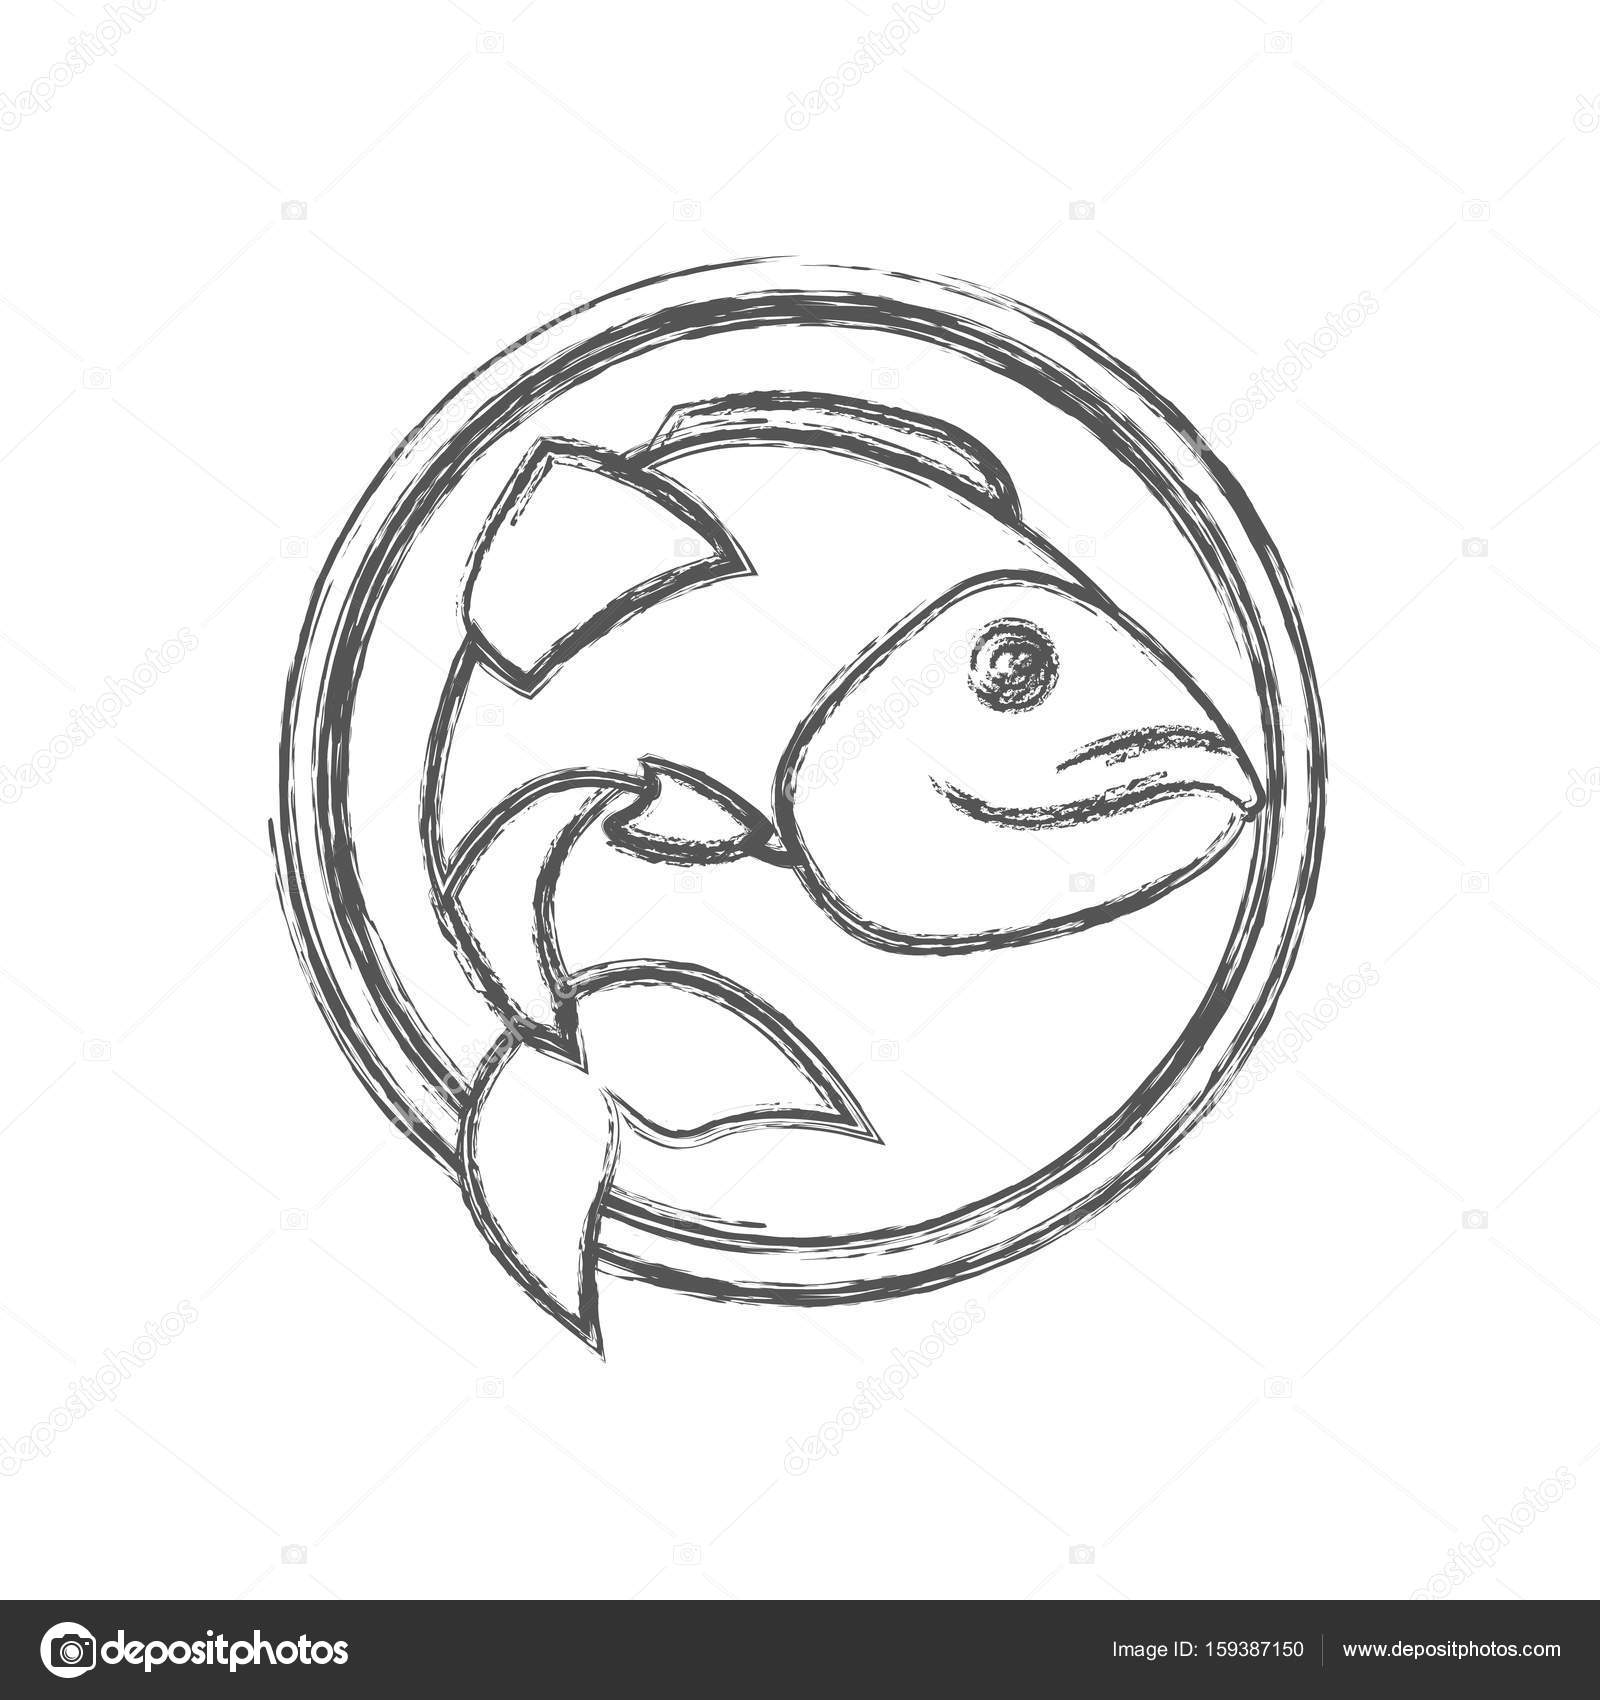 1600x1700 Blurred Sketch Silhouette Circular Emblem With Largemouth Bass